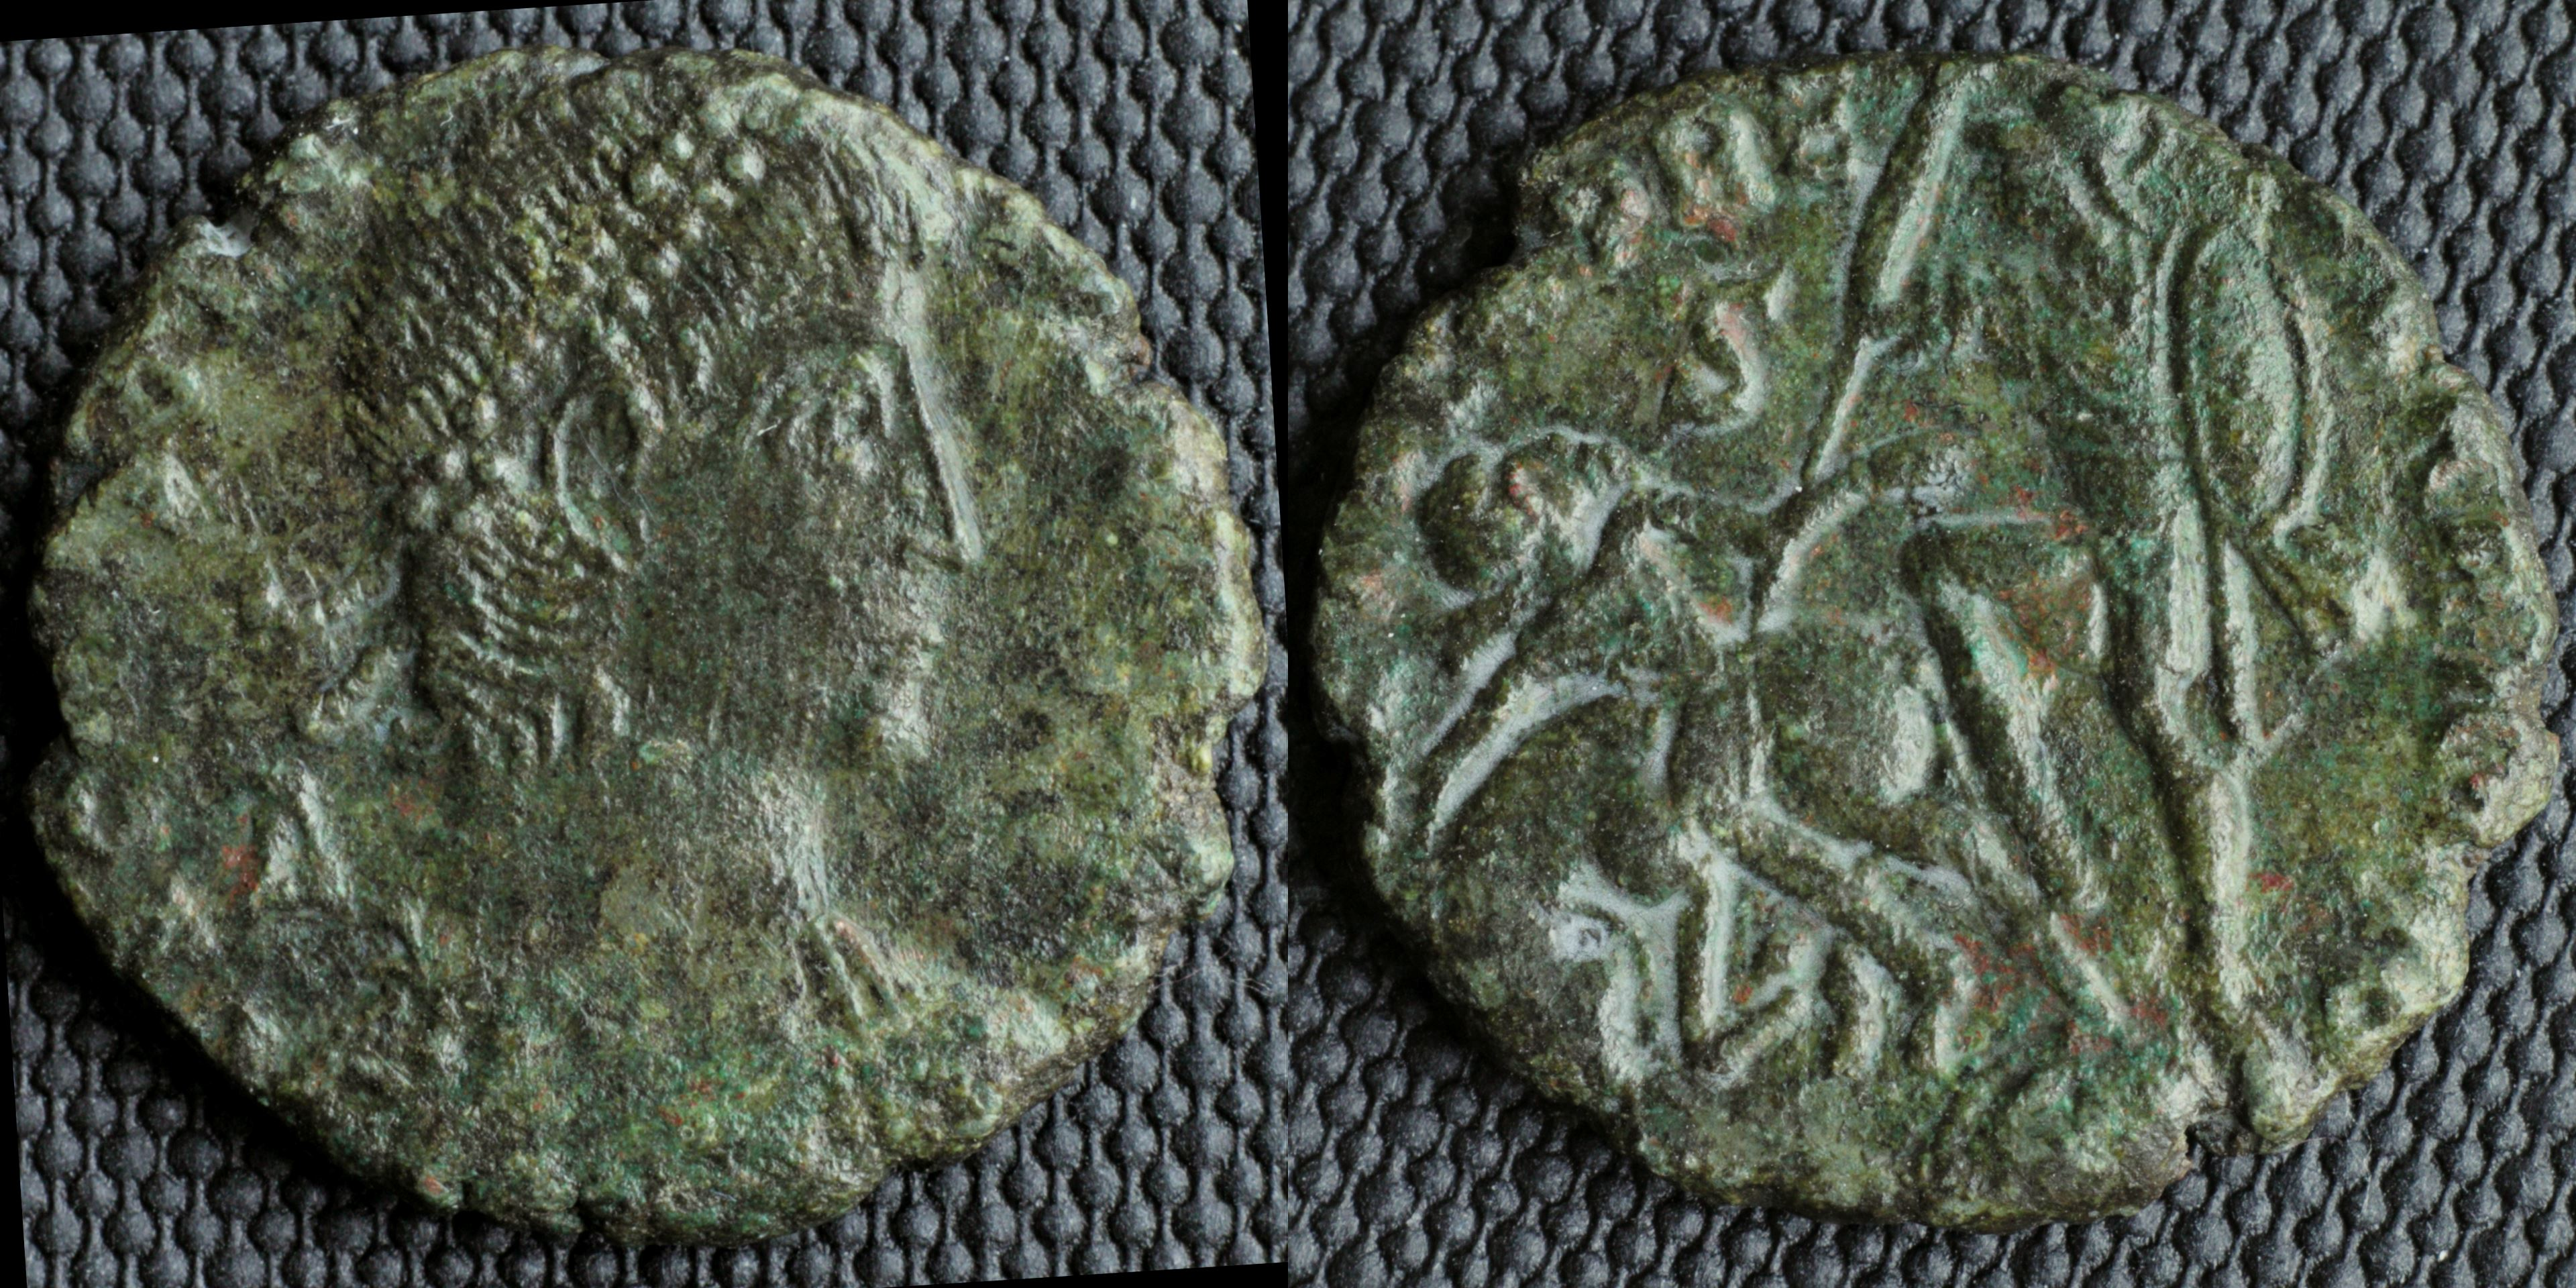 /Files/Images/Coinsite/CoinDB/168_Constantius_II_S_Heraclea.jpg